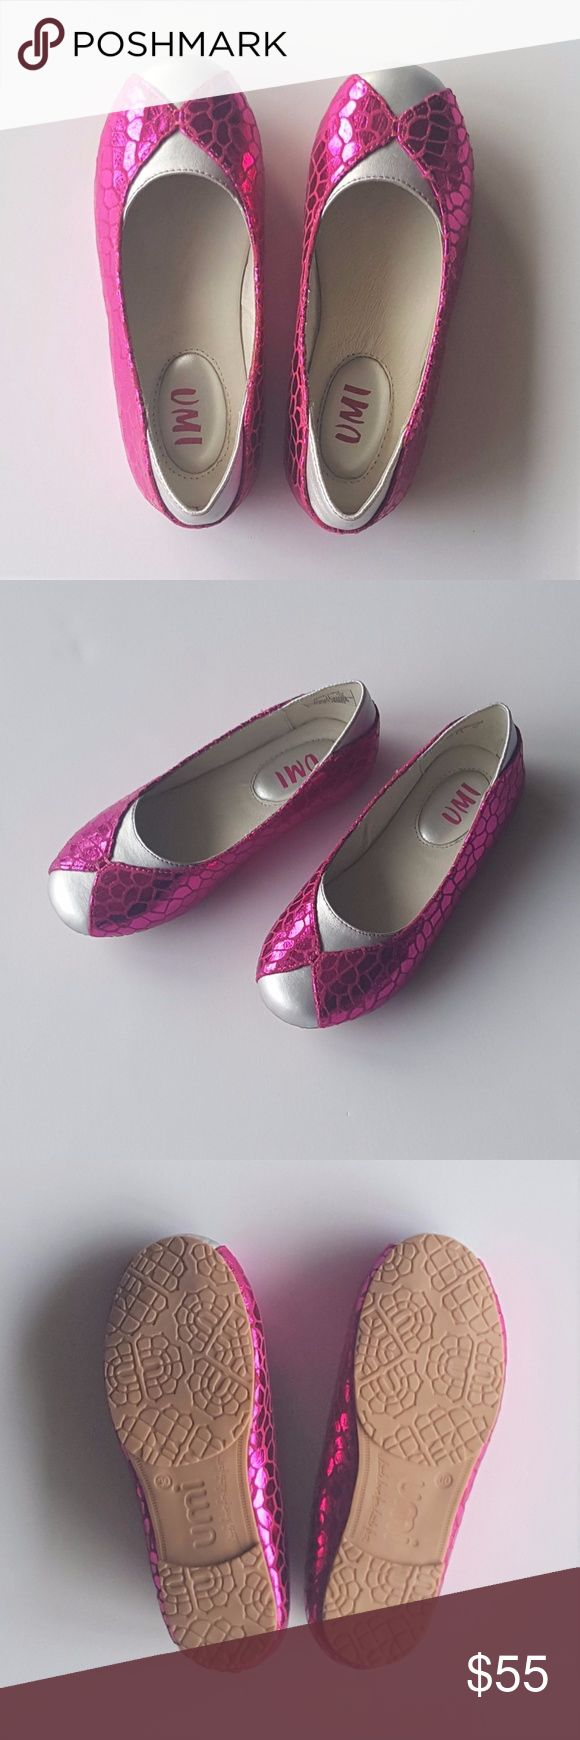 """UMI """"Lidia"""" Ballet Flats - Sz. 12 US (Girl's) UMI """"Lidia"""" Ballet Flats in Metallic Pink & Silver with Faux Snakeskin Accents -  A clever and playful spin on the classic ballet flat!!!  - Girl's Size 12 US / 30 EU -  Per UMI size chart, length of sole from heel to toe = 7.25"""" - NEW IN BOX -  * NOTES *   1. The box shows some wear from storage, but shoes inside remain in BRAND NEW, UNWORN CONDITION.  2.  On inside of the left shoe, there are some light markings as a result of the """"snakeskin""""…"""